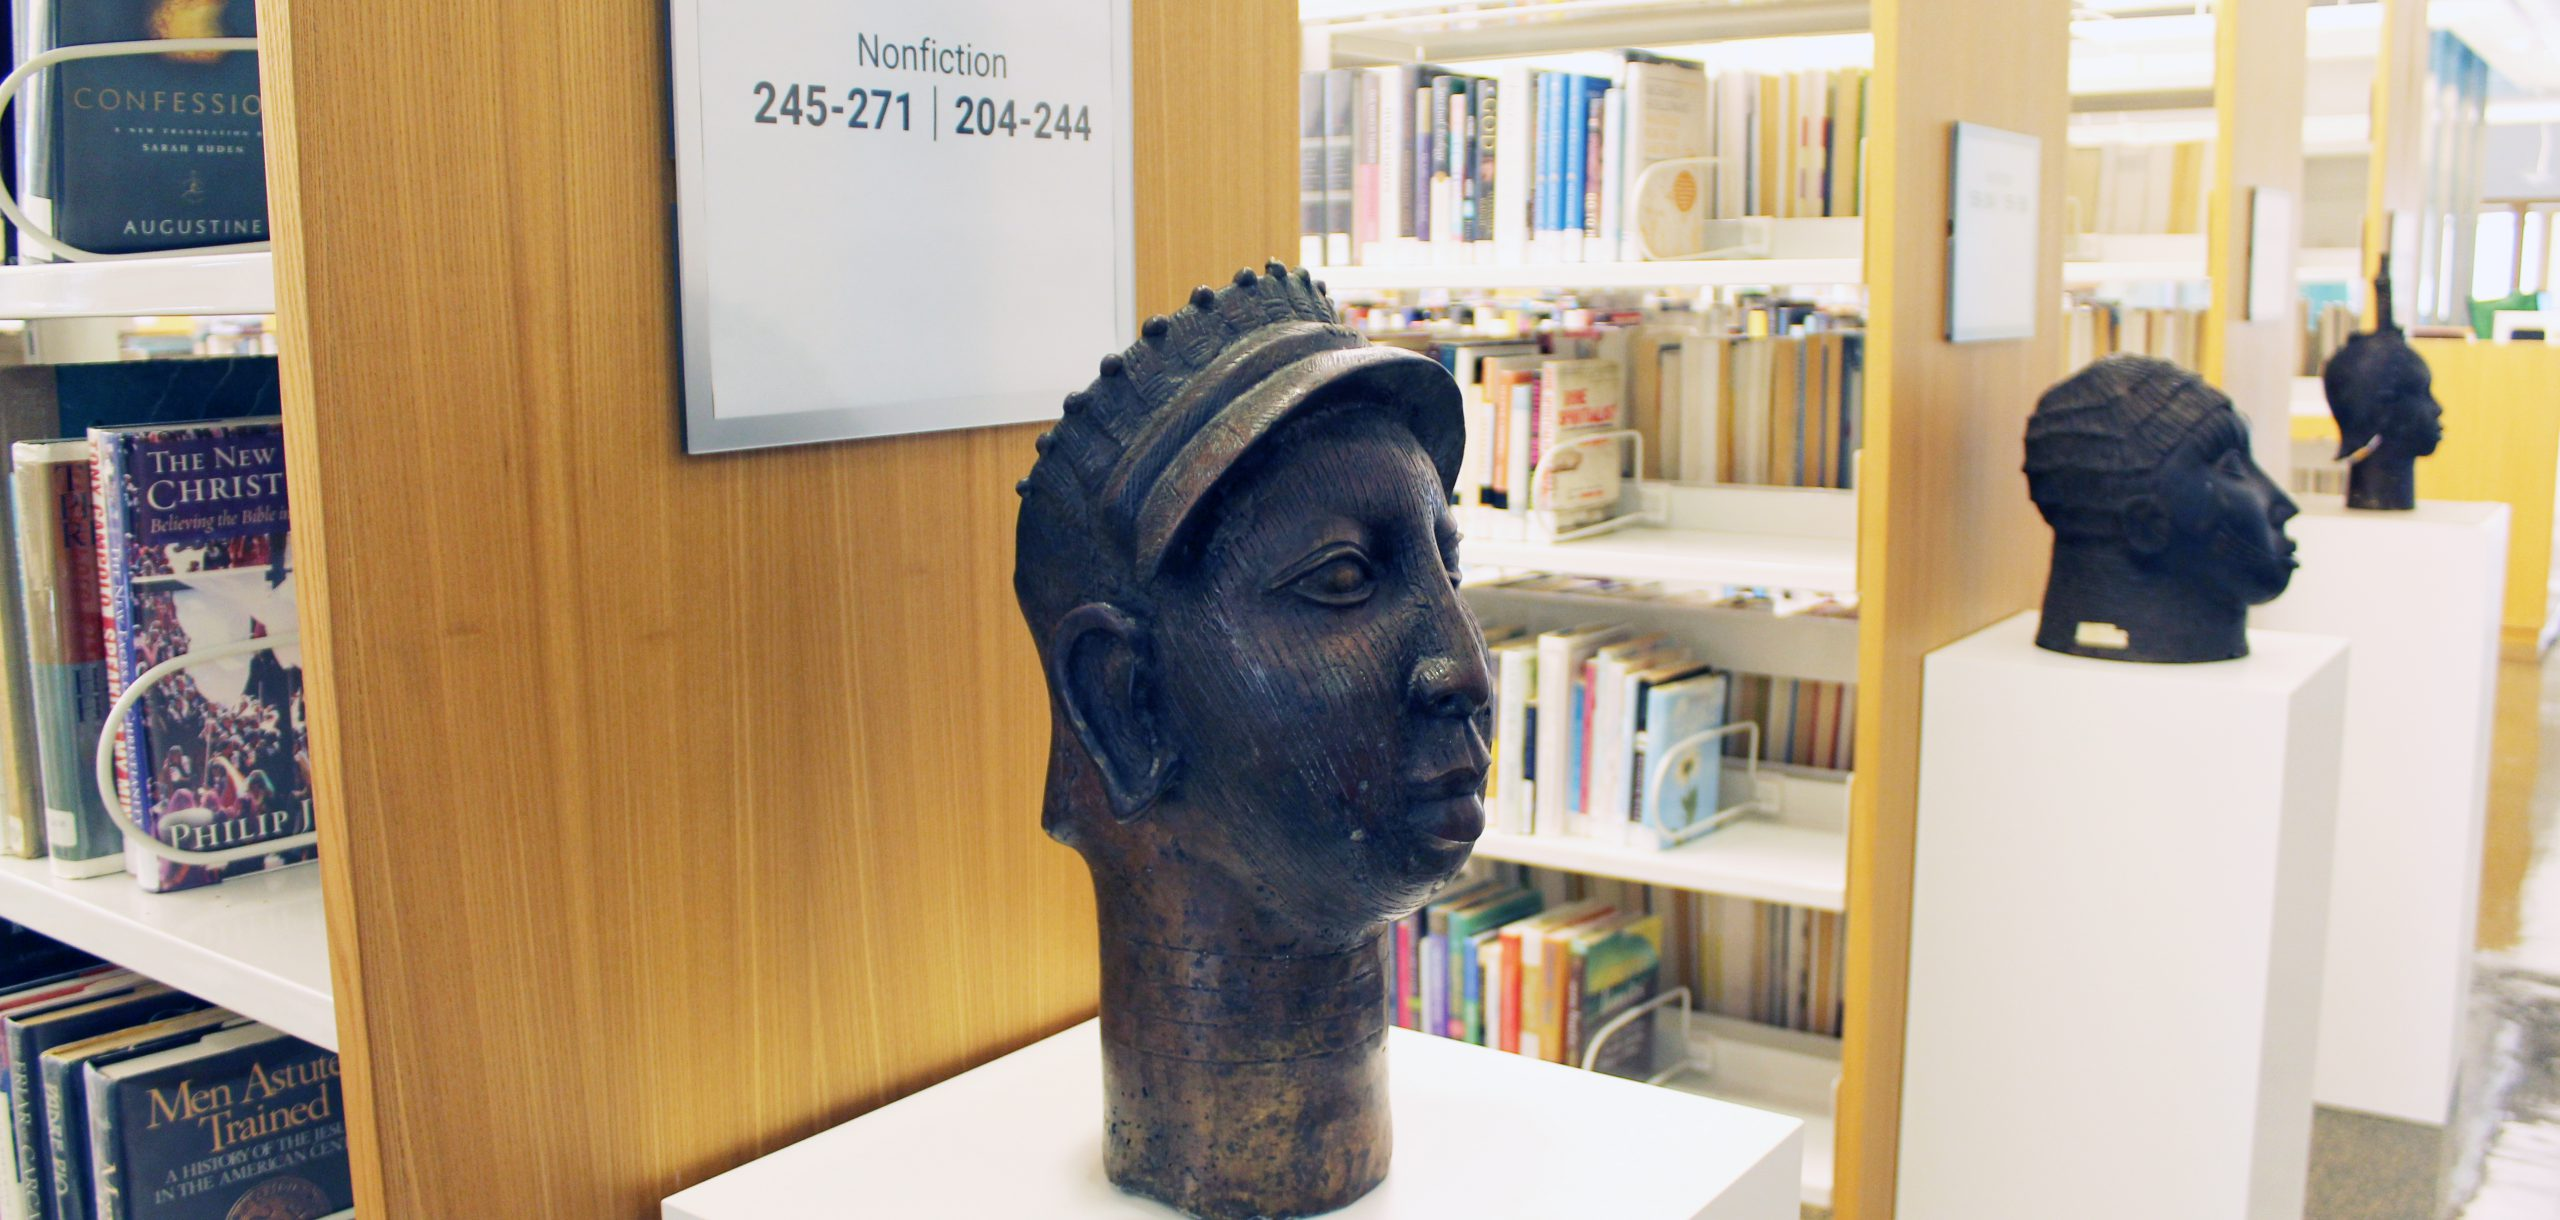 Sculptures on pedestals in front of bookshelves